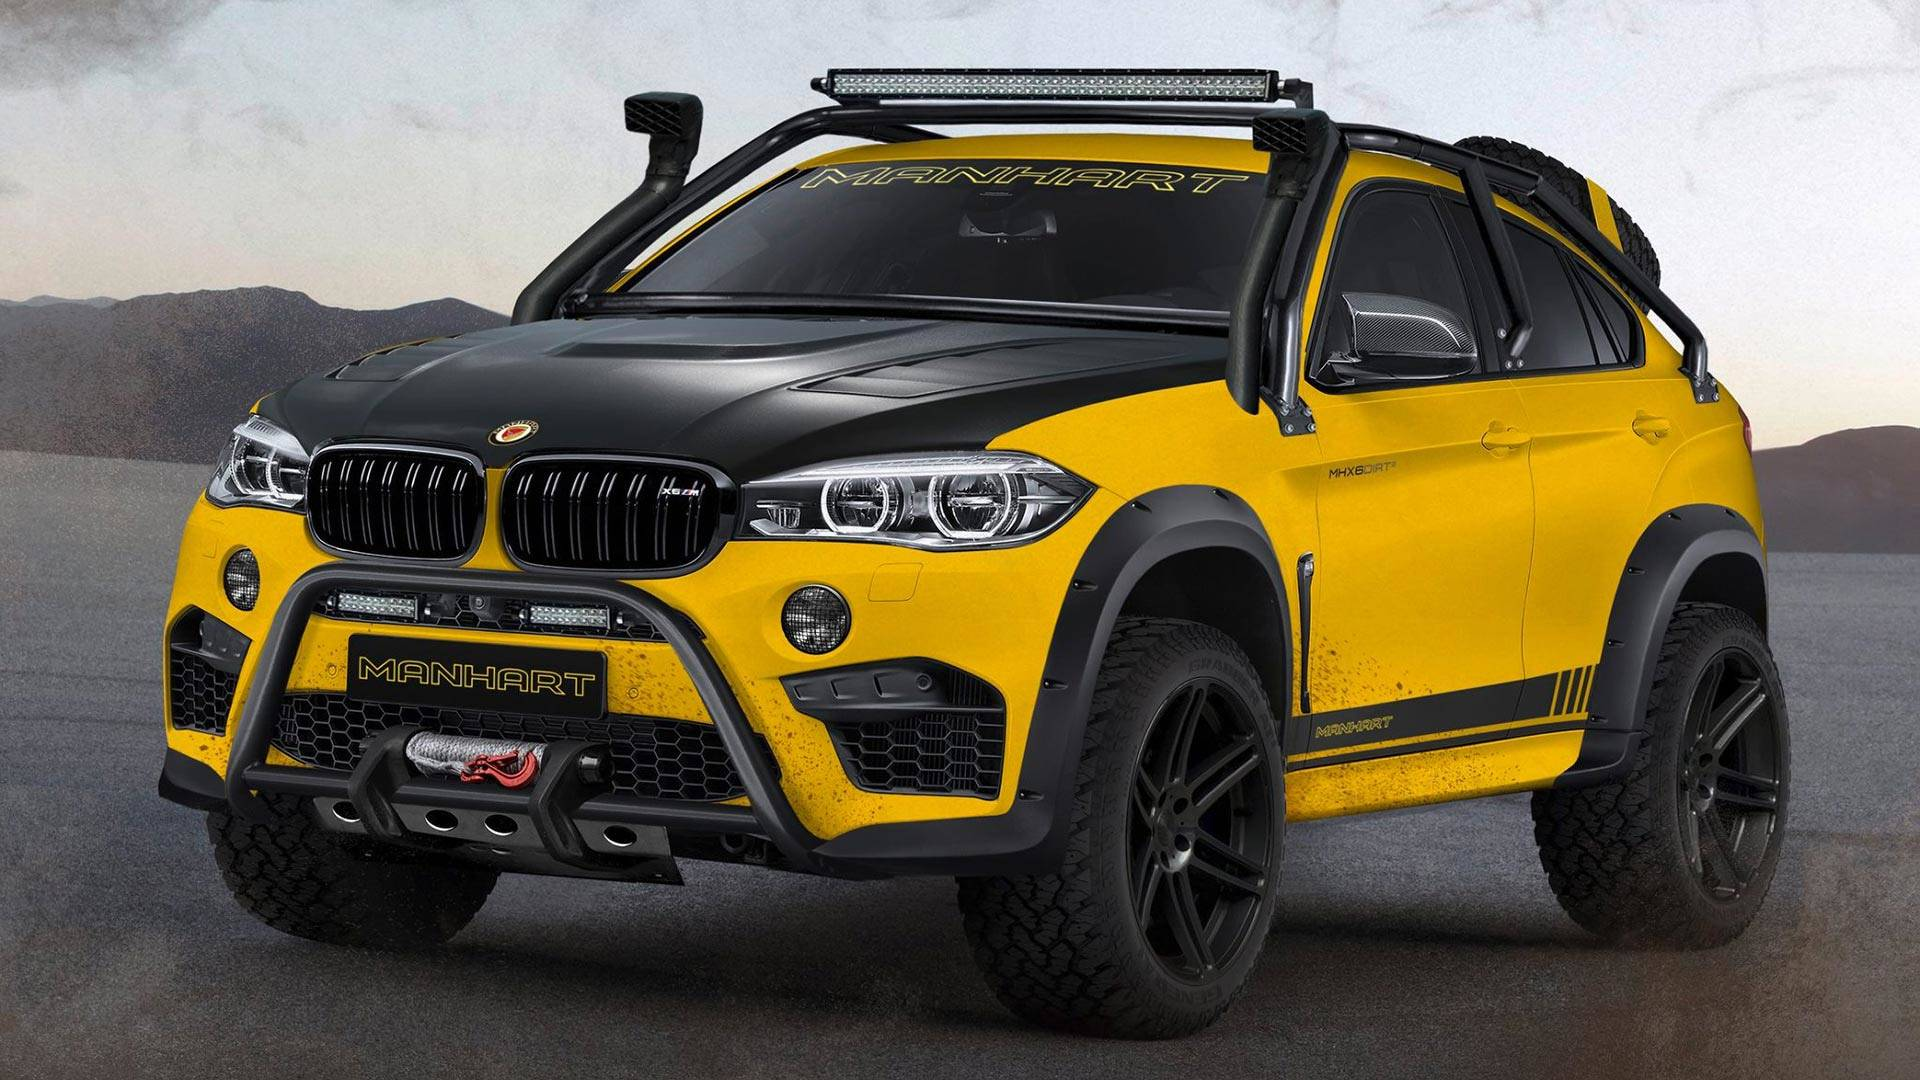 Manhart Mhx6 Dirt Is A 888 Hp Bmw X6 M Not Afraid To Get Dirty